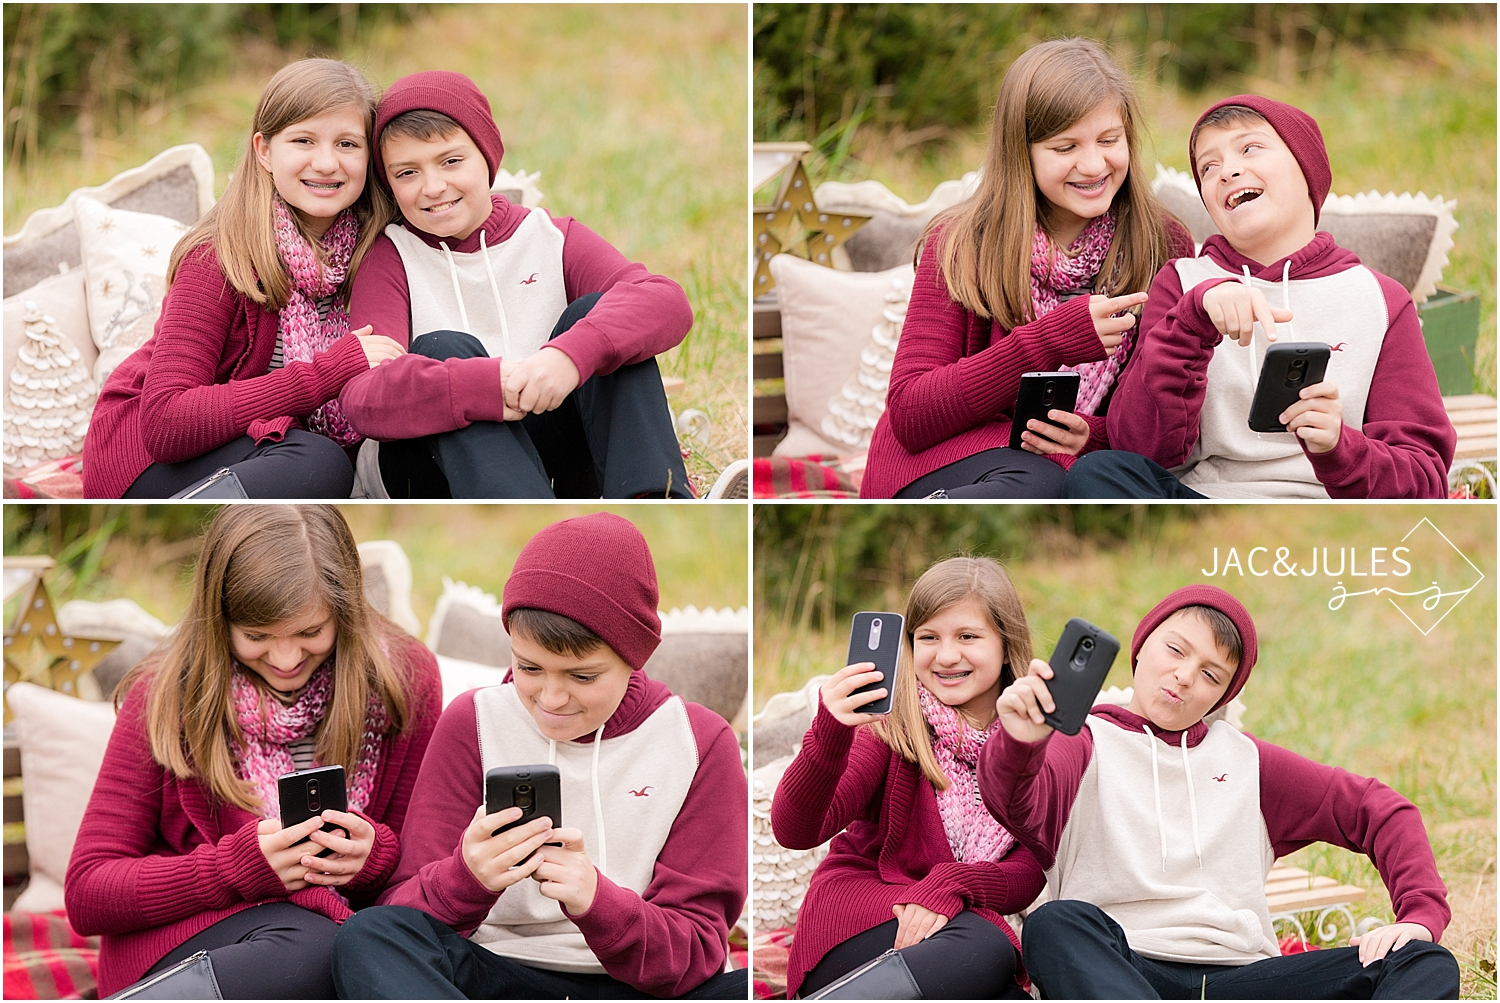 jacnjules photographs children for their holiday photos at lone silo tree farm in NJ